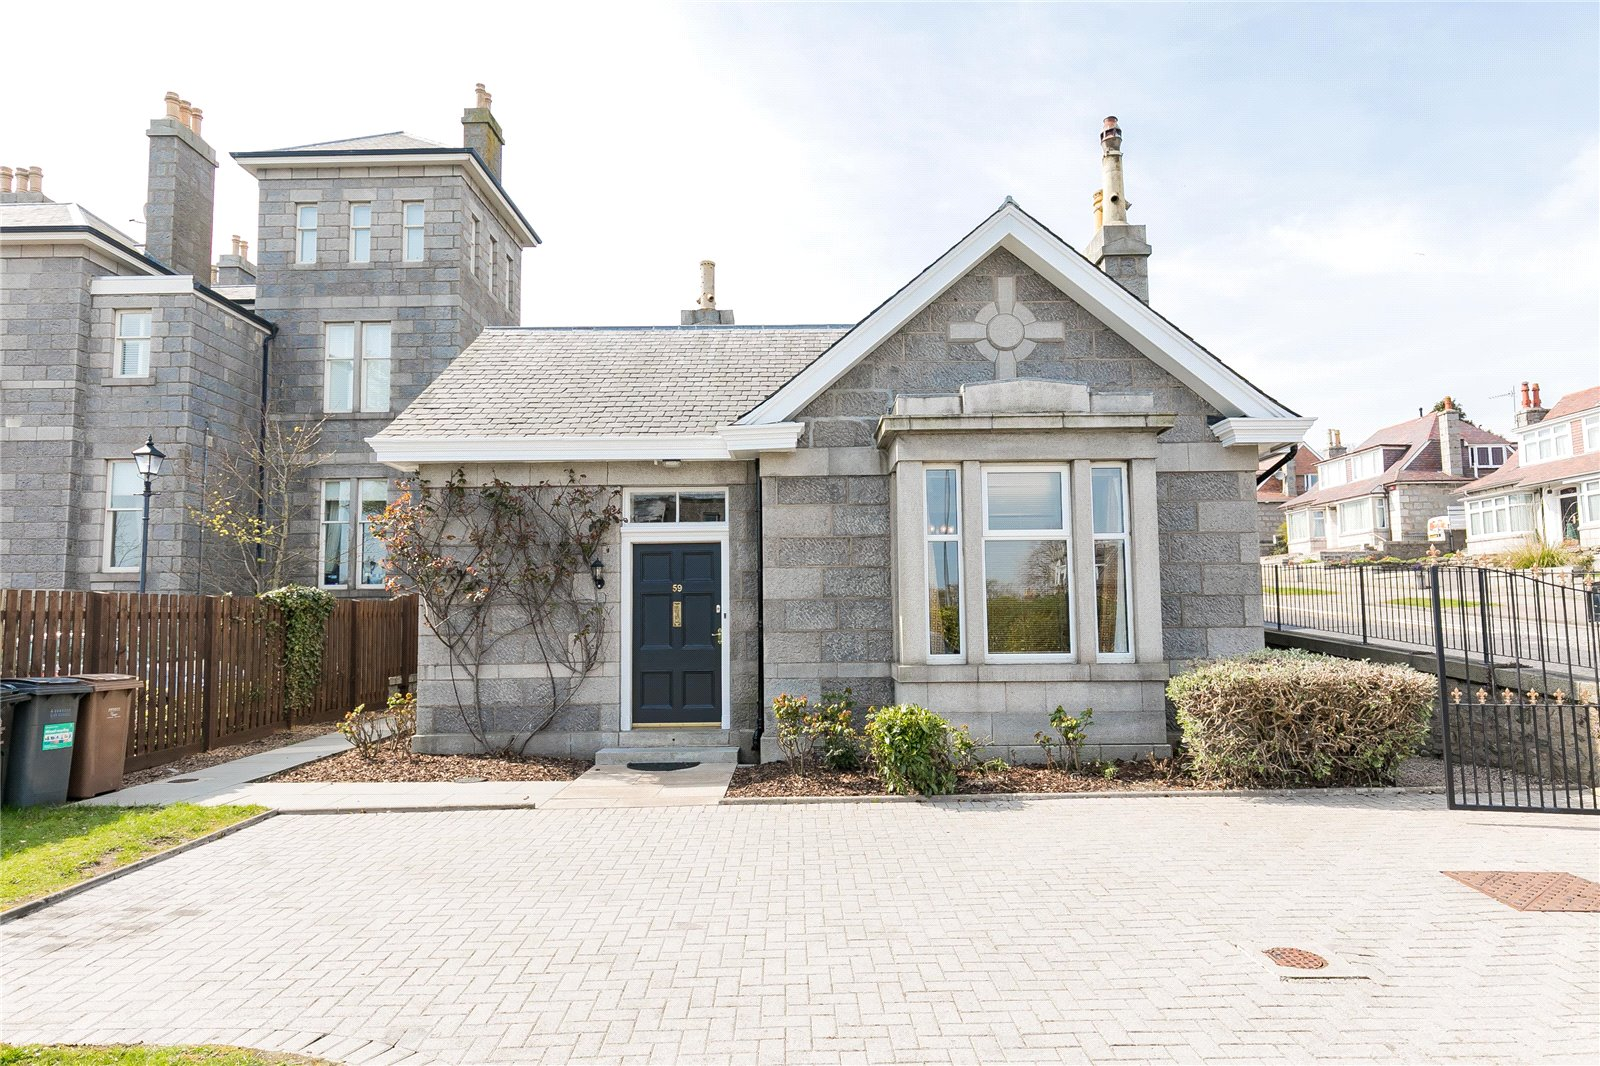 Our latest properties for sale and to let (26th April 2019)